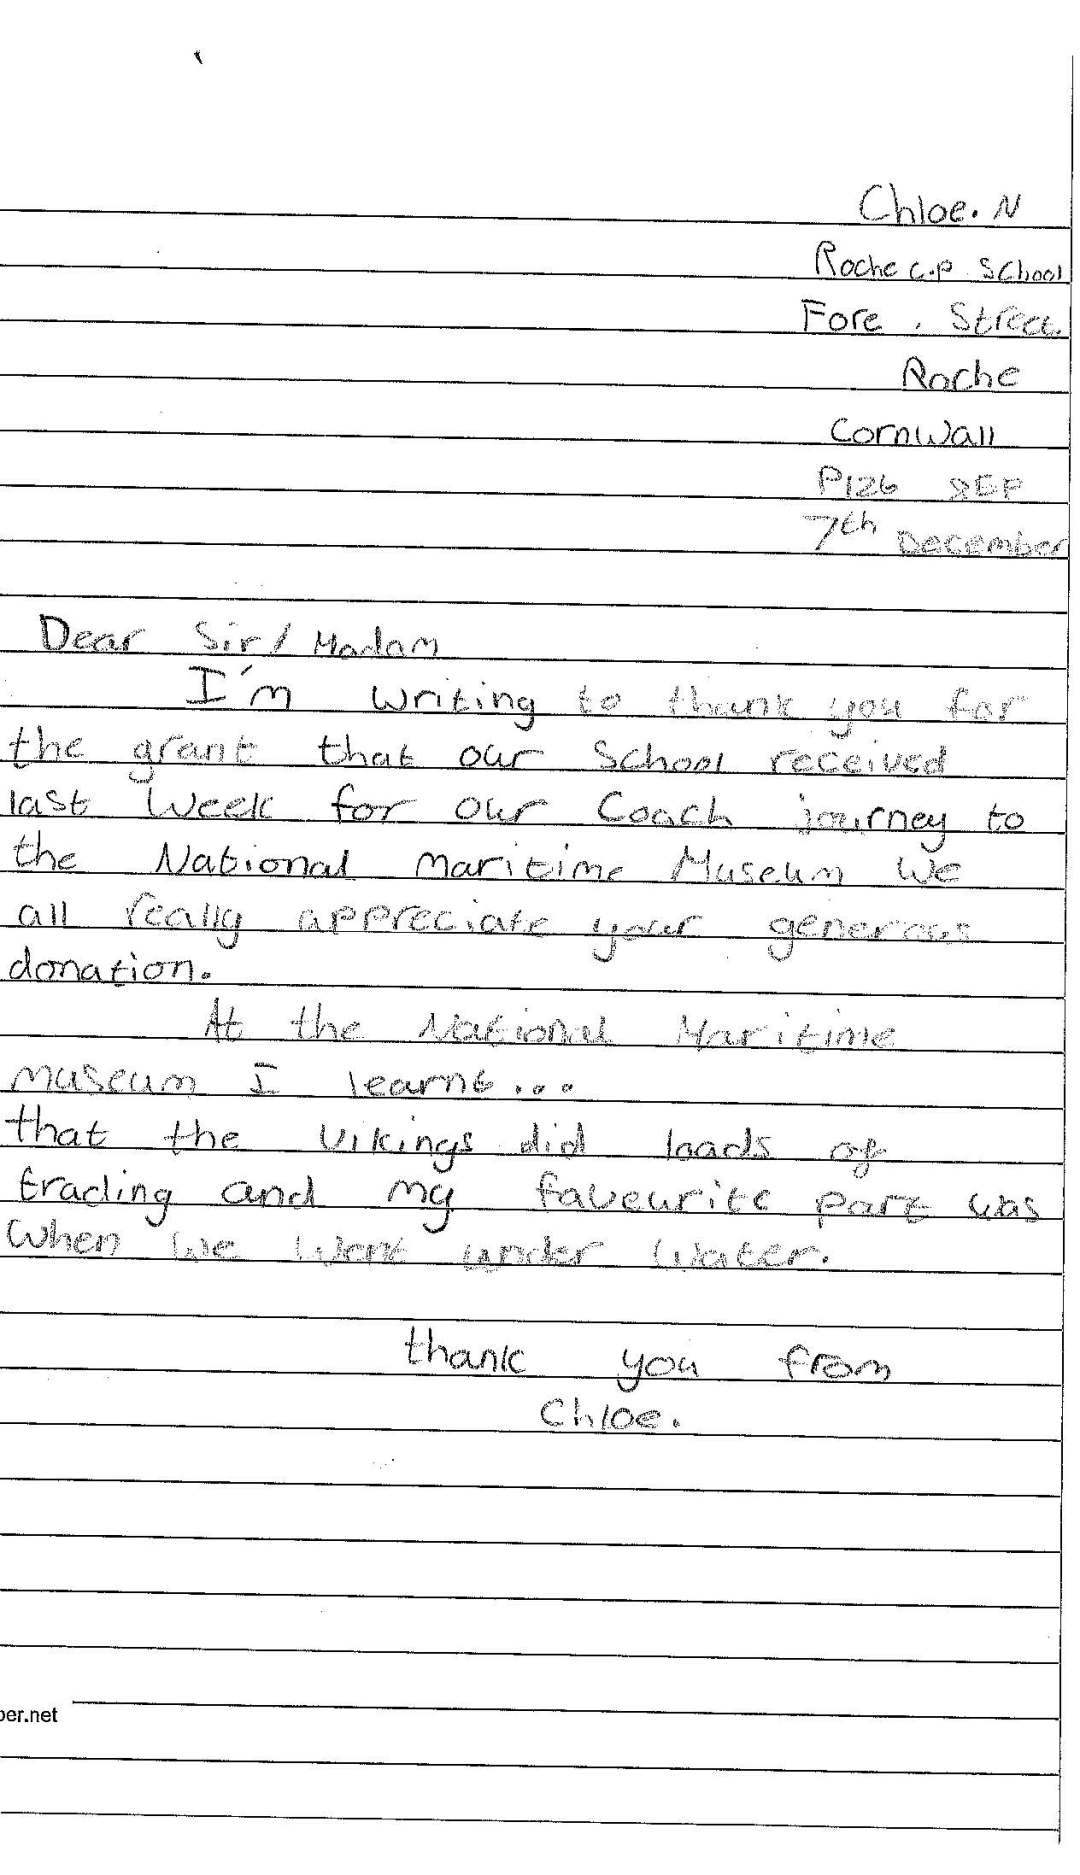 Roche CP School letters Dec 17_Part13